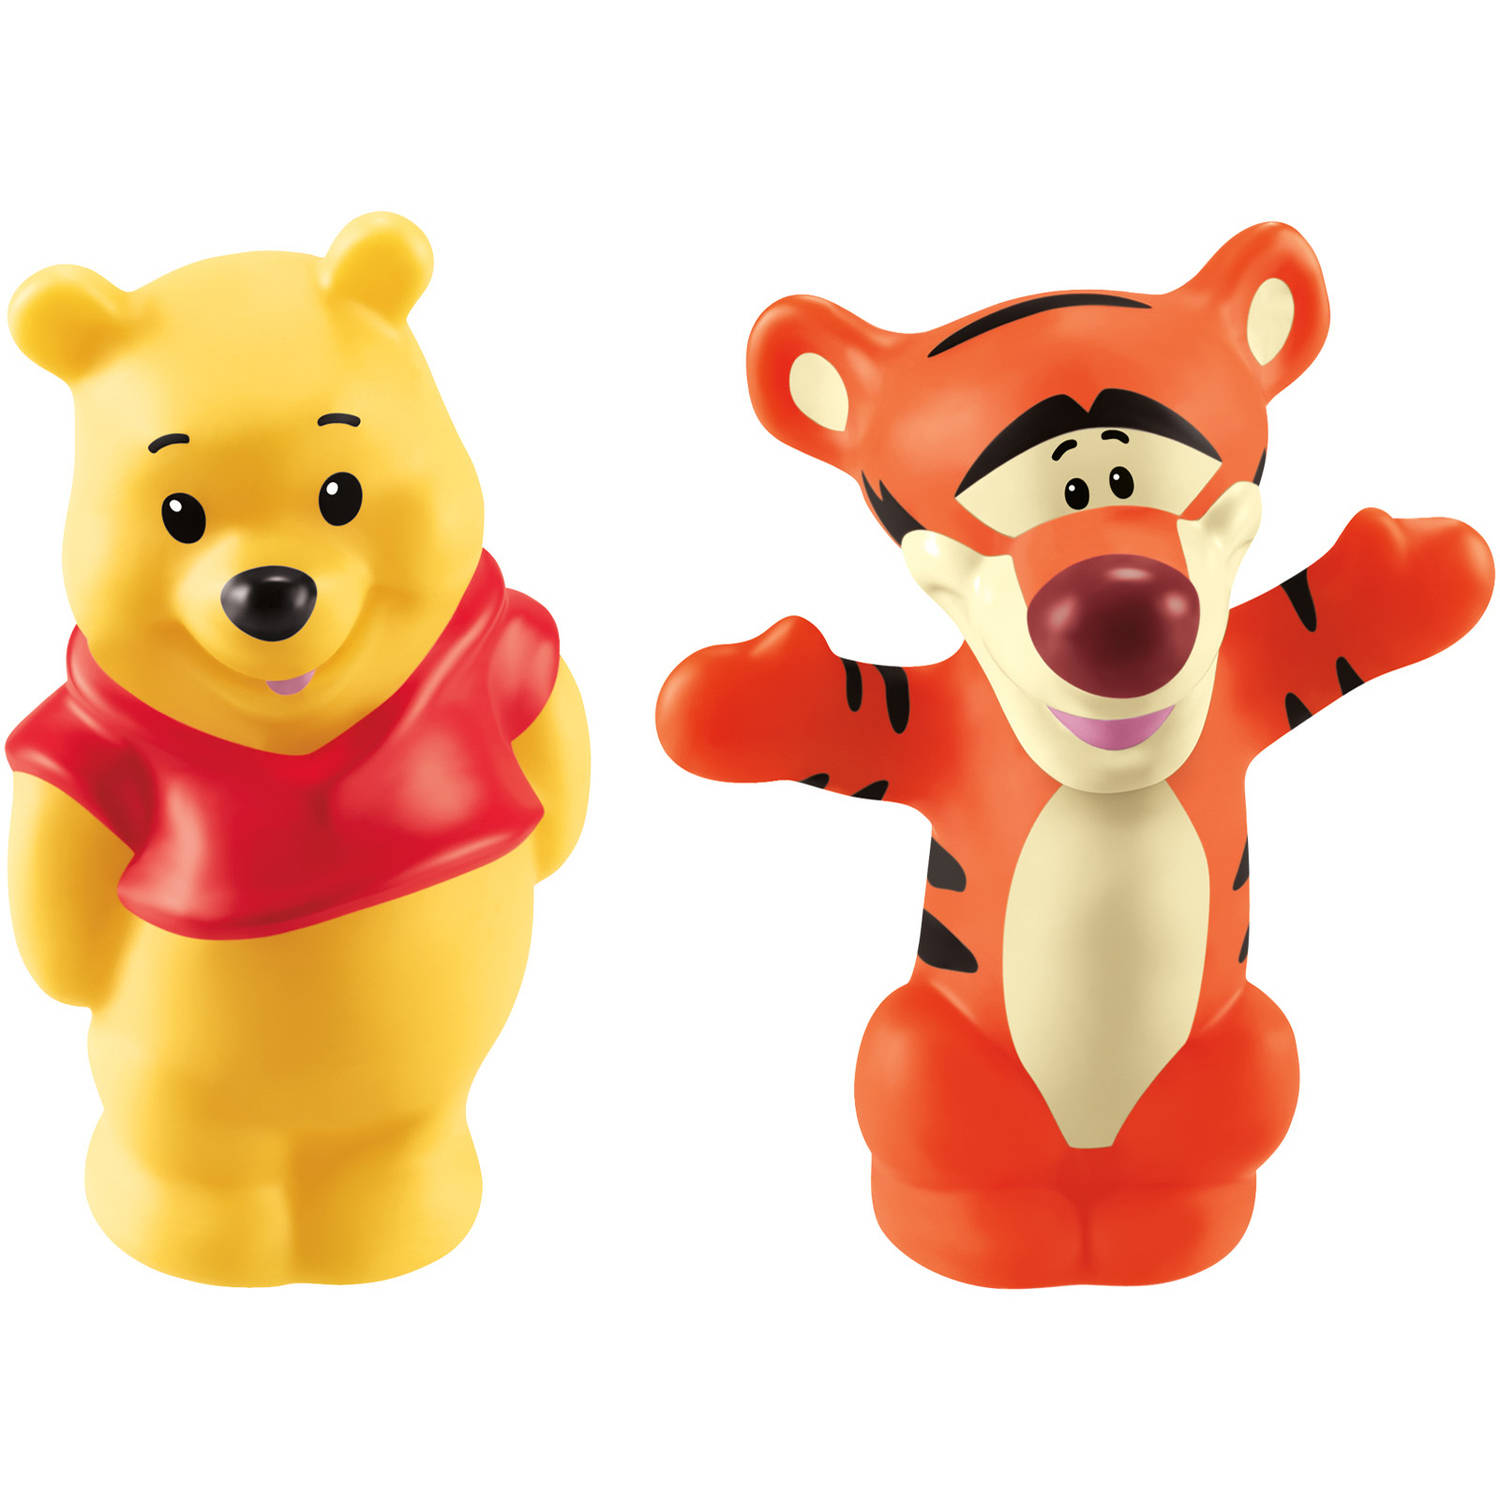 Fisher-Price Magic of Disney Pooh and Tigger Friends by Little People